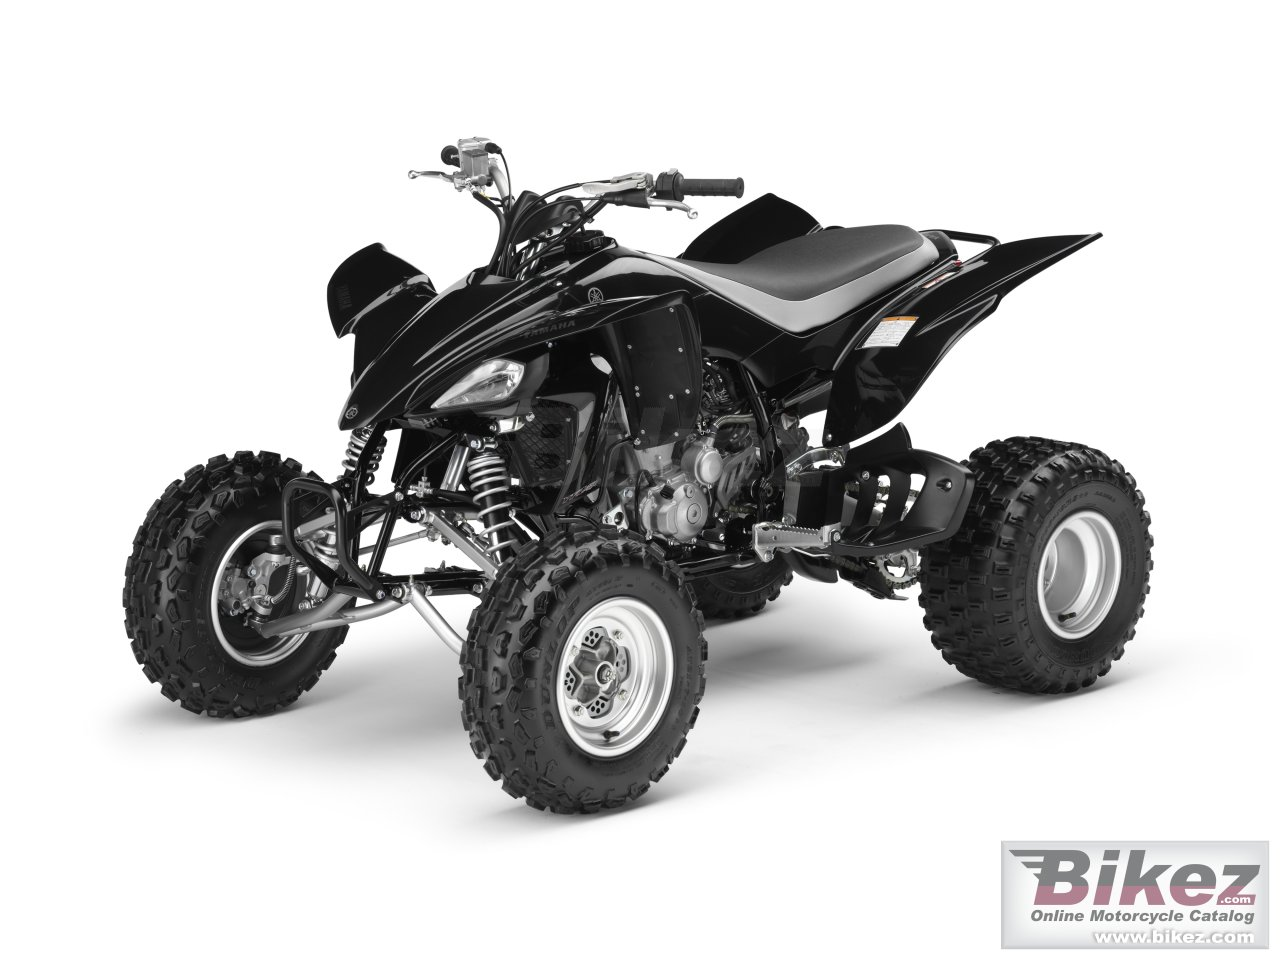 Big Yamaha yfz450 picture and wallpaper from Bikez.com